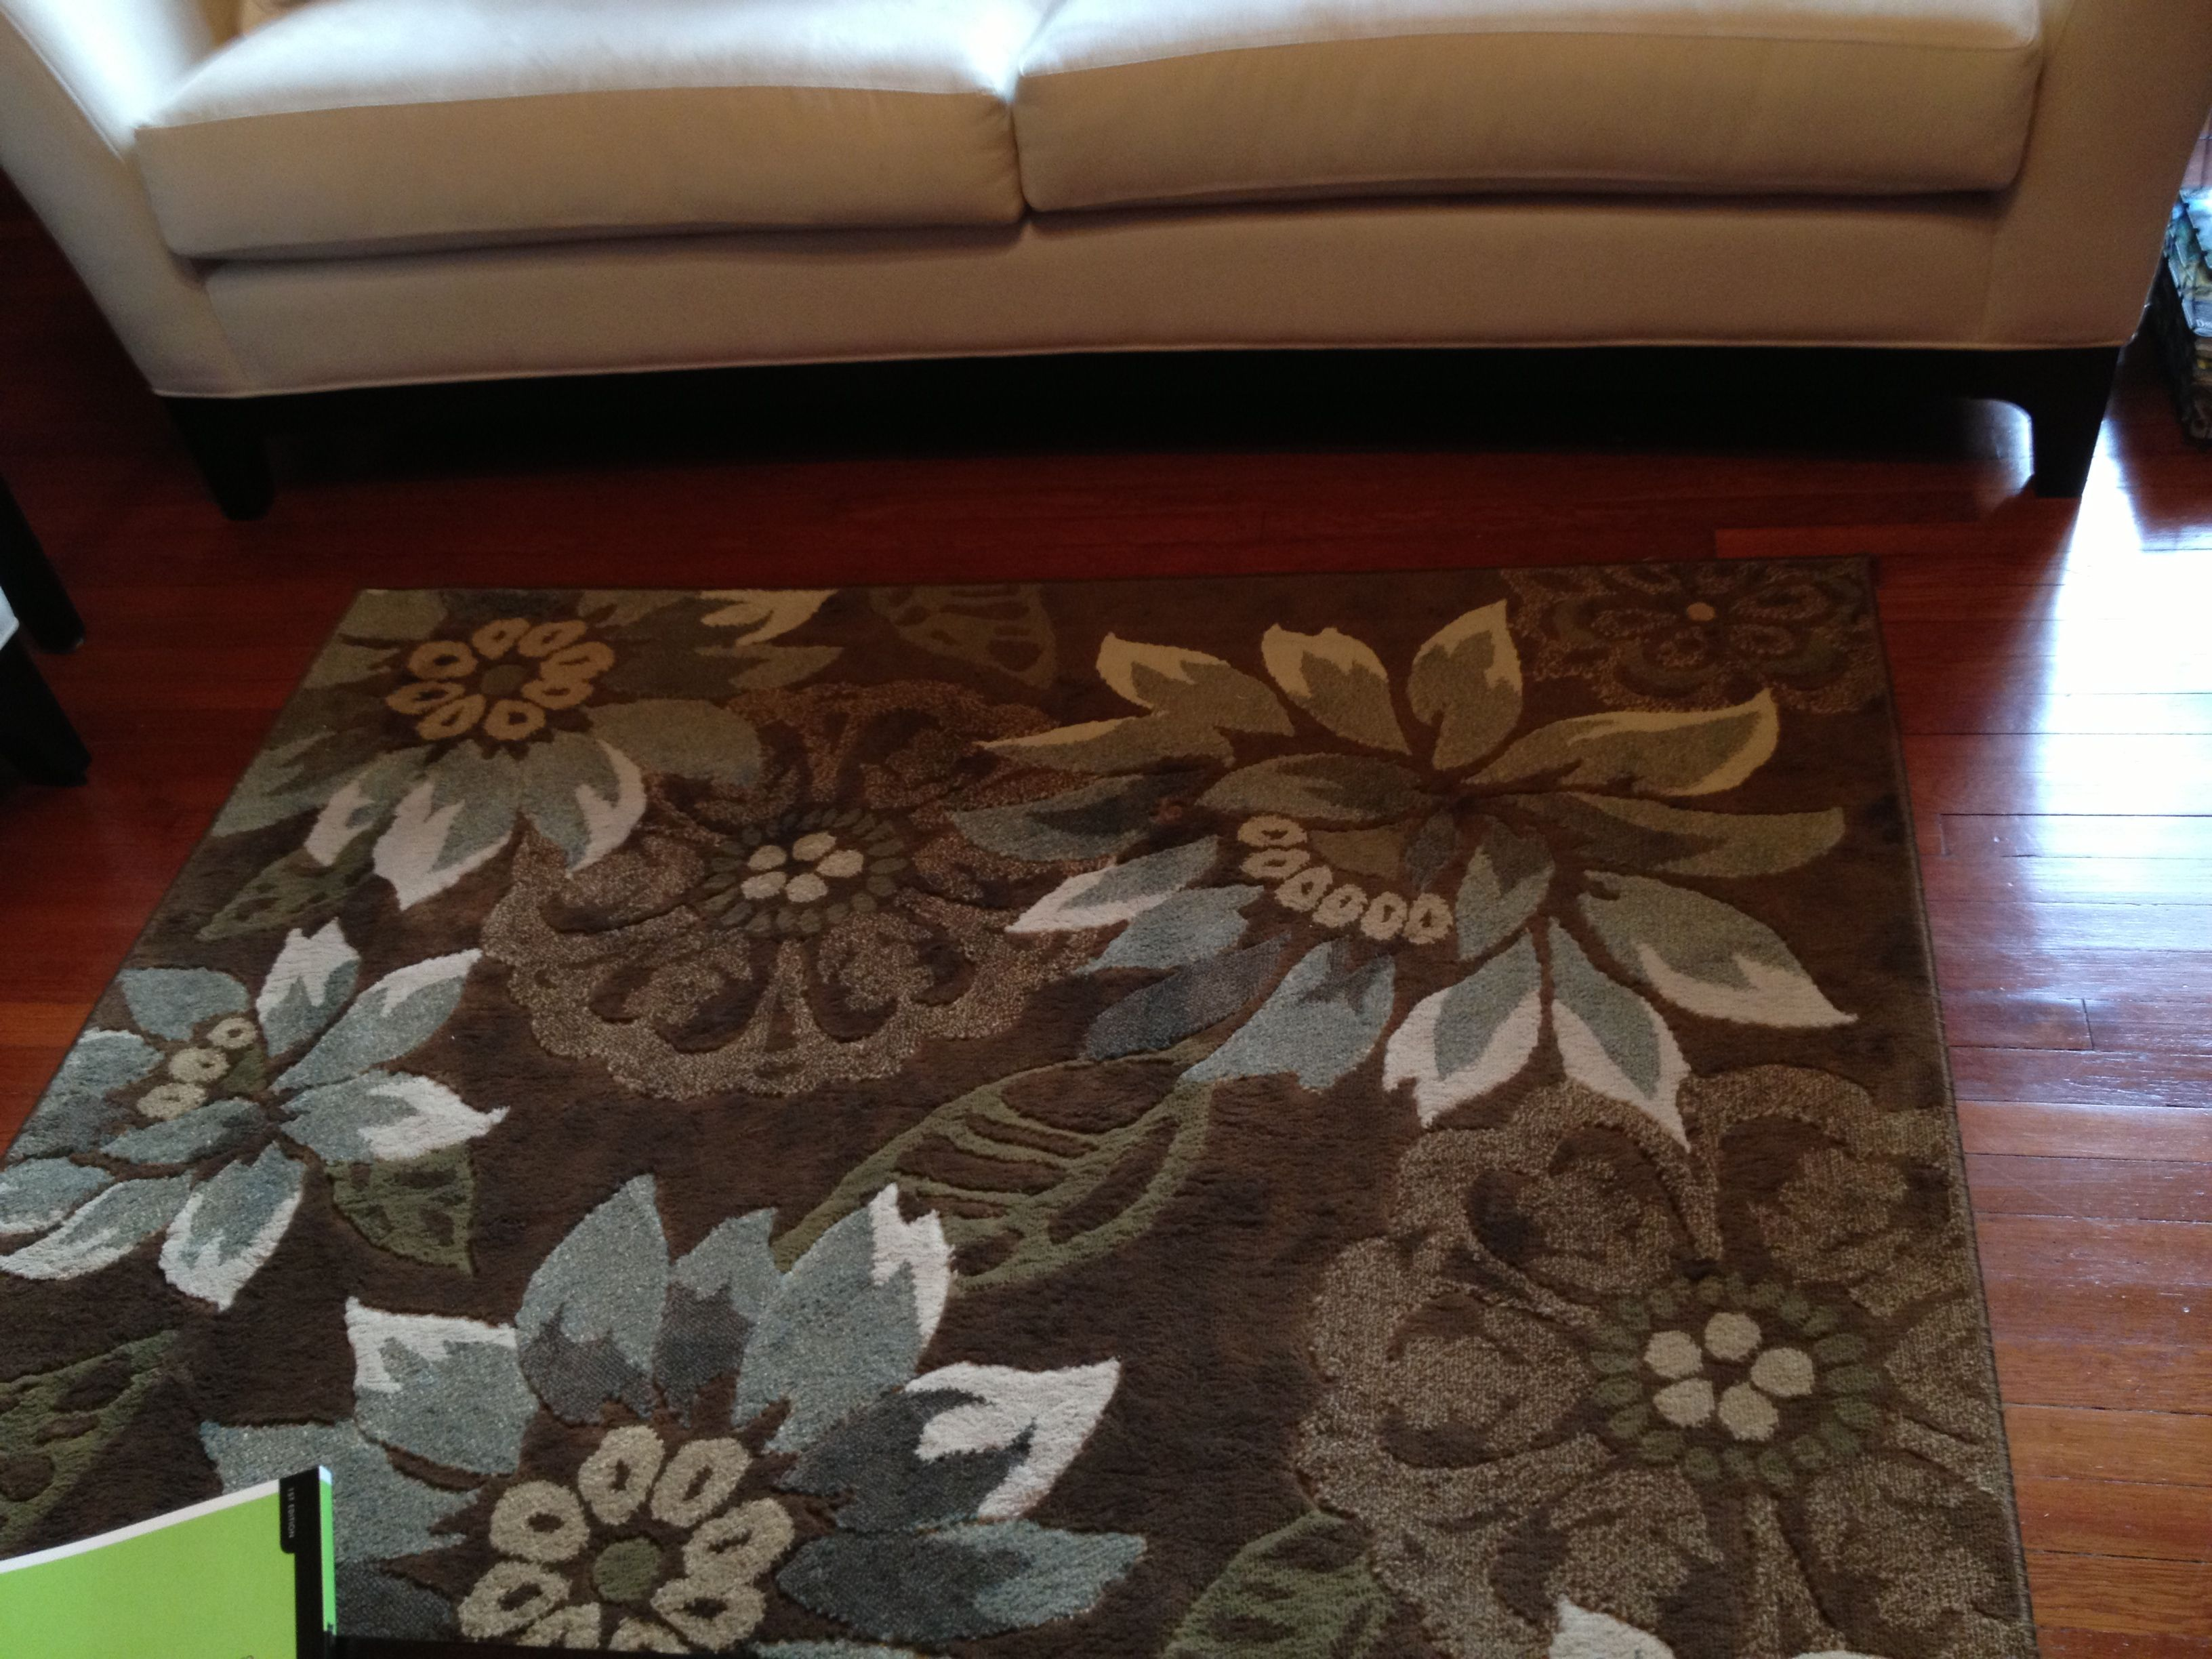 Current Area Rug In Living Room Colors Are Brown Ivory